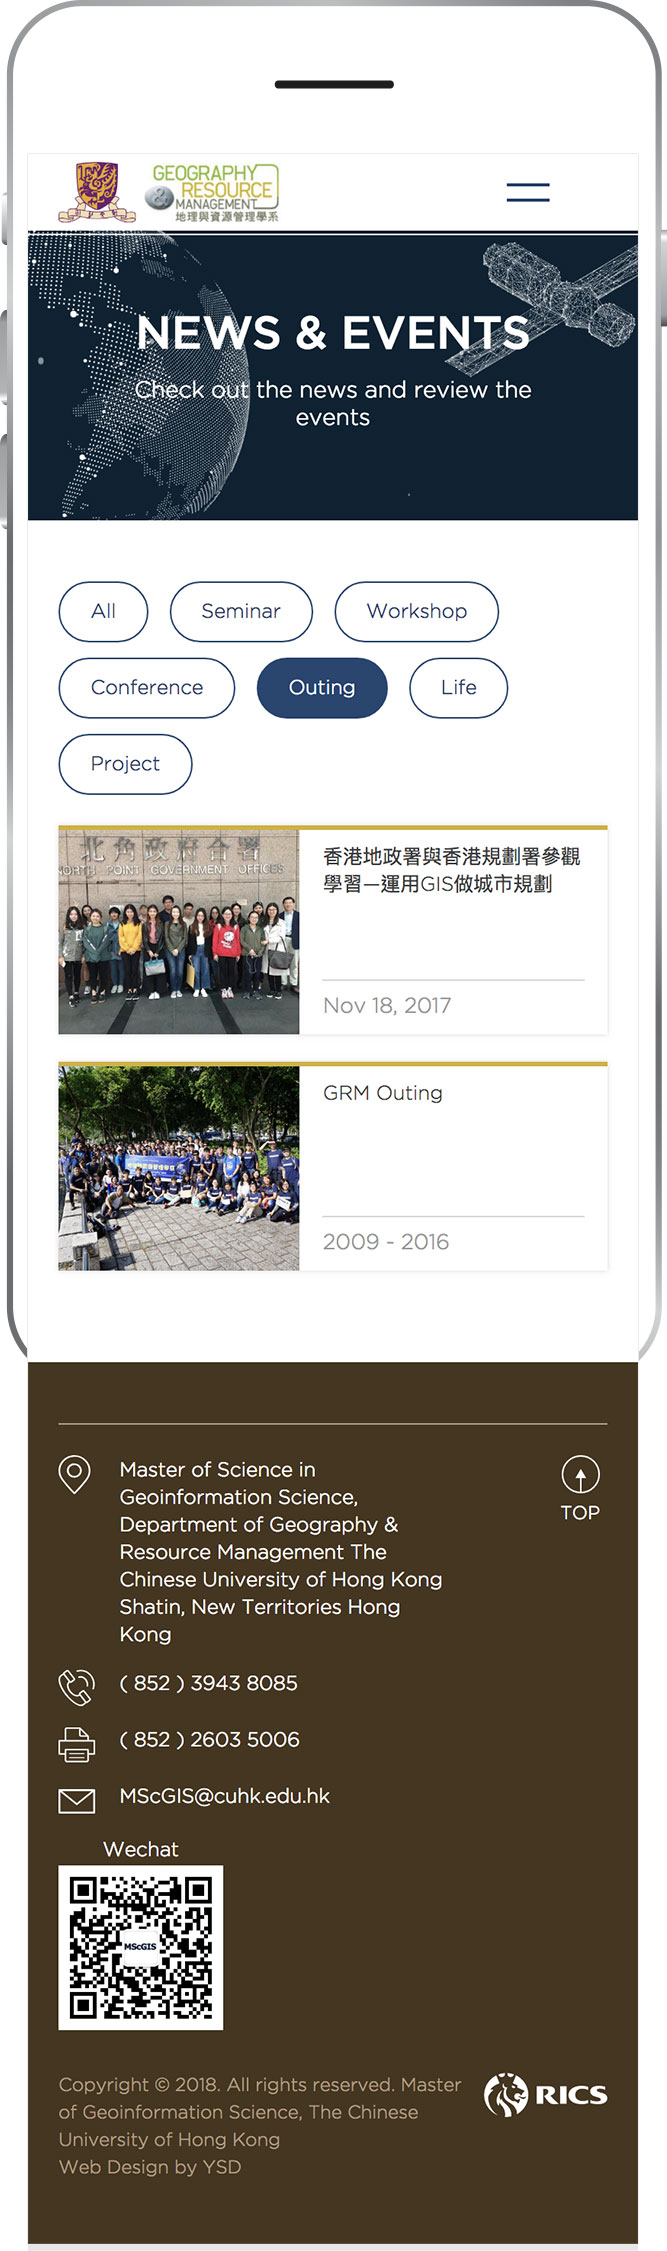 Master of Geoinformation Science, CUHK